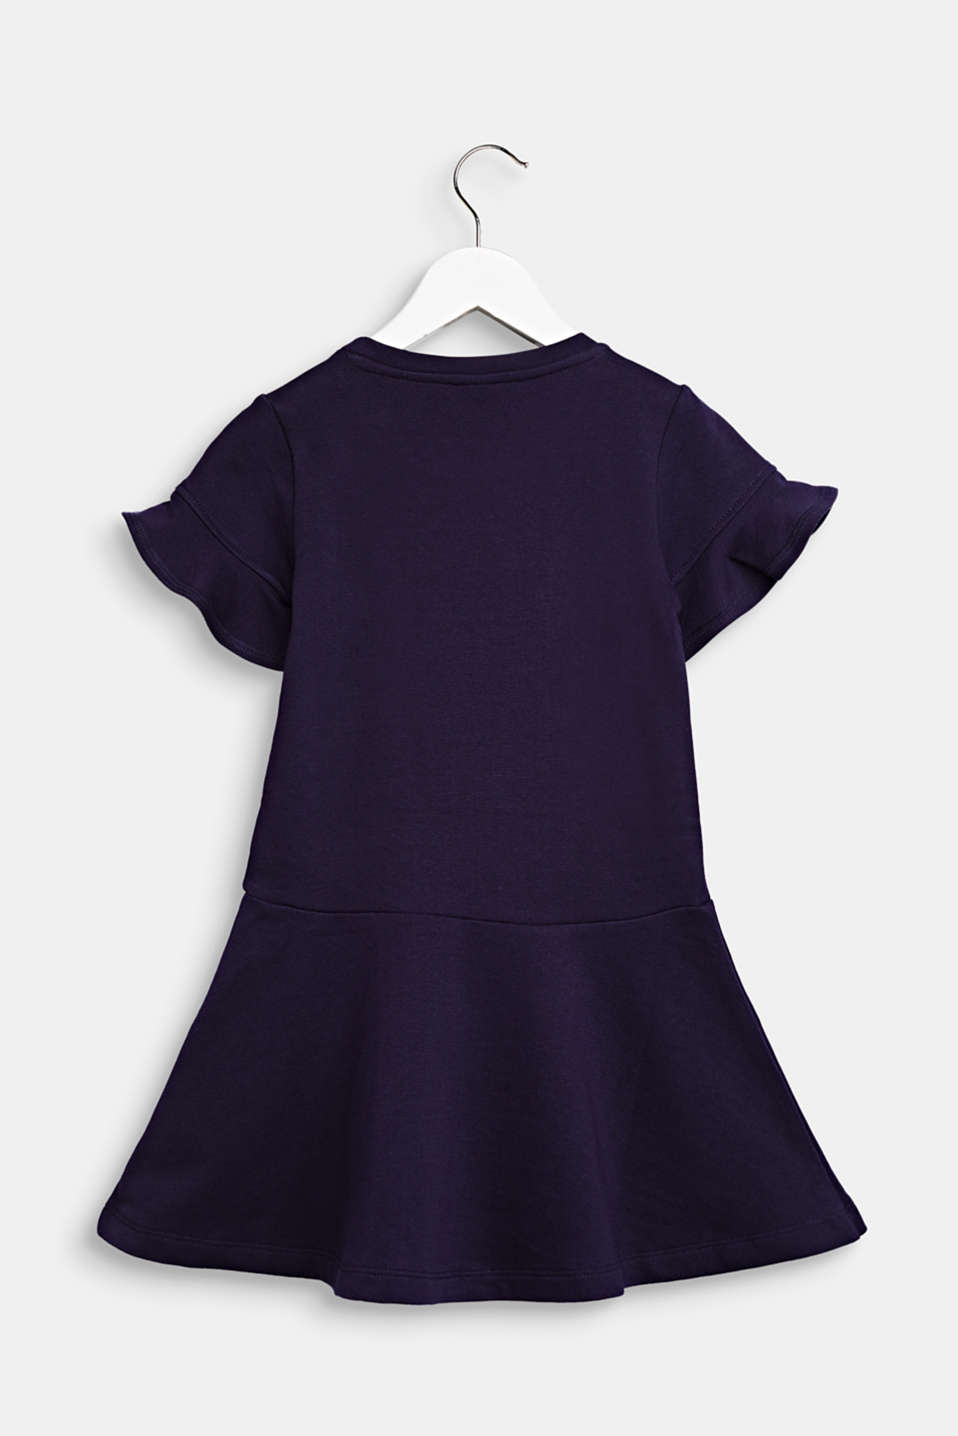 Sweatshirt dress with sequins, 100% cotton, NIGHT BLUE, detail image number 1